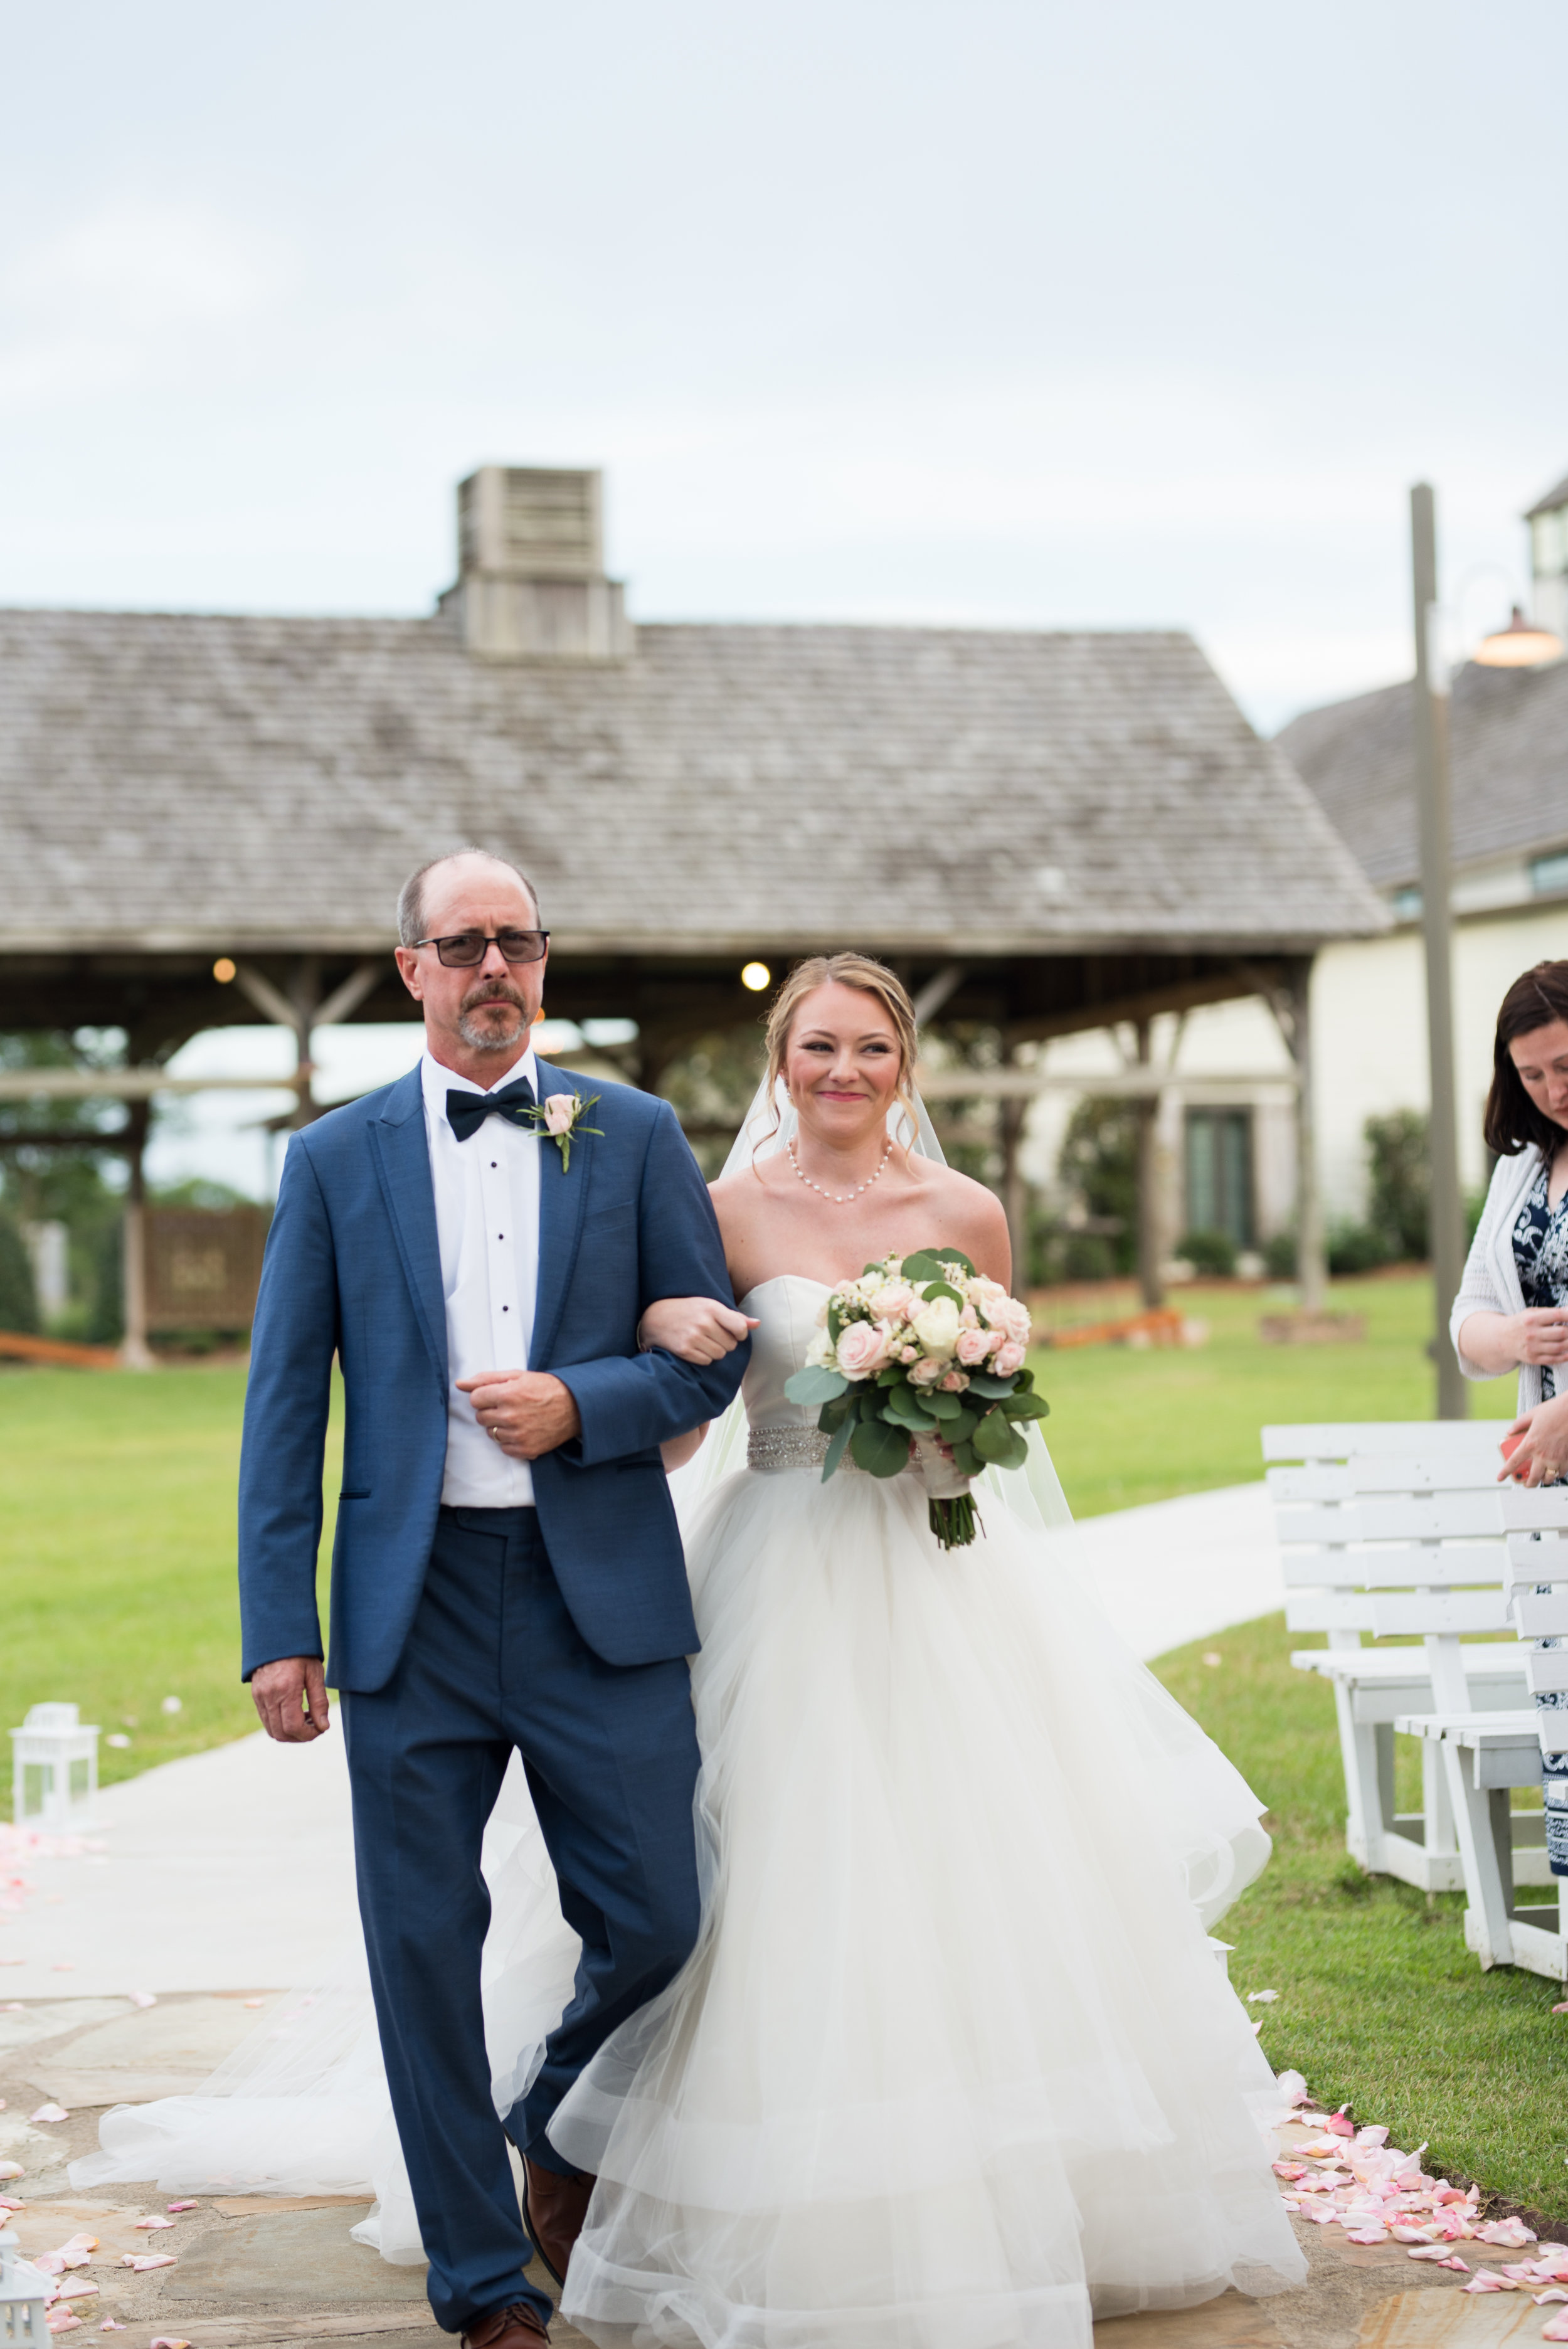 The Barn at Bridlewood wedding in Hattiesburg, Mississippi (MS) in June | Bride and Groom Wedding ceremony bride's emotional first look of her groom standing at the end of the aisle